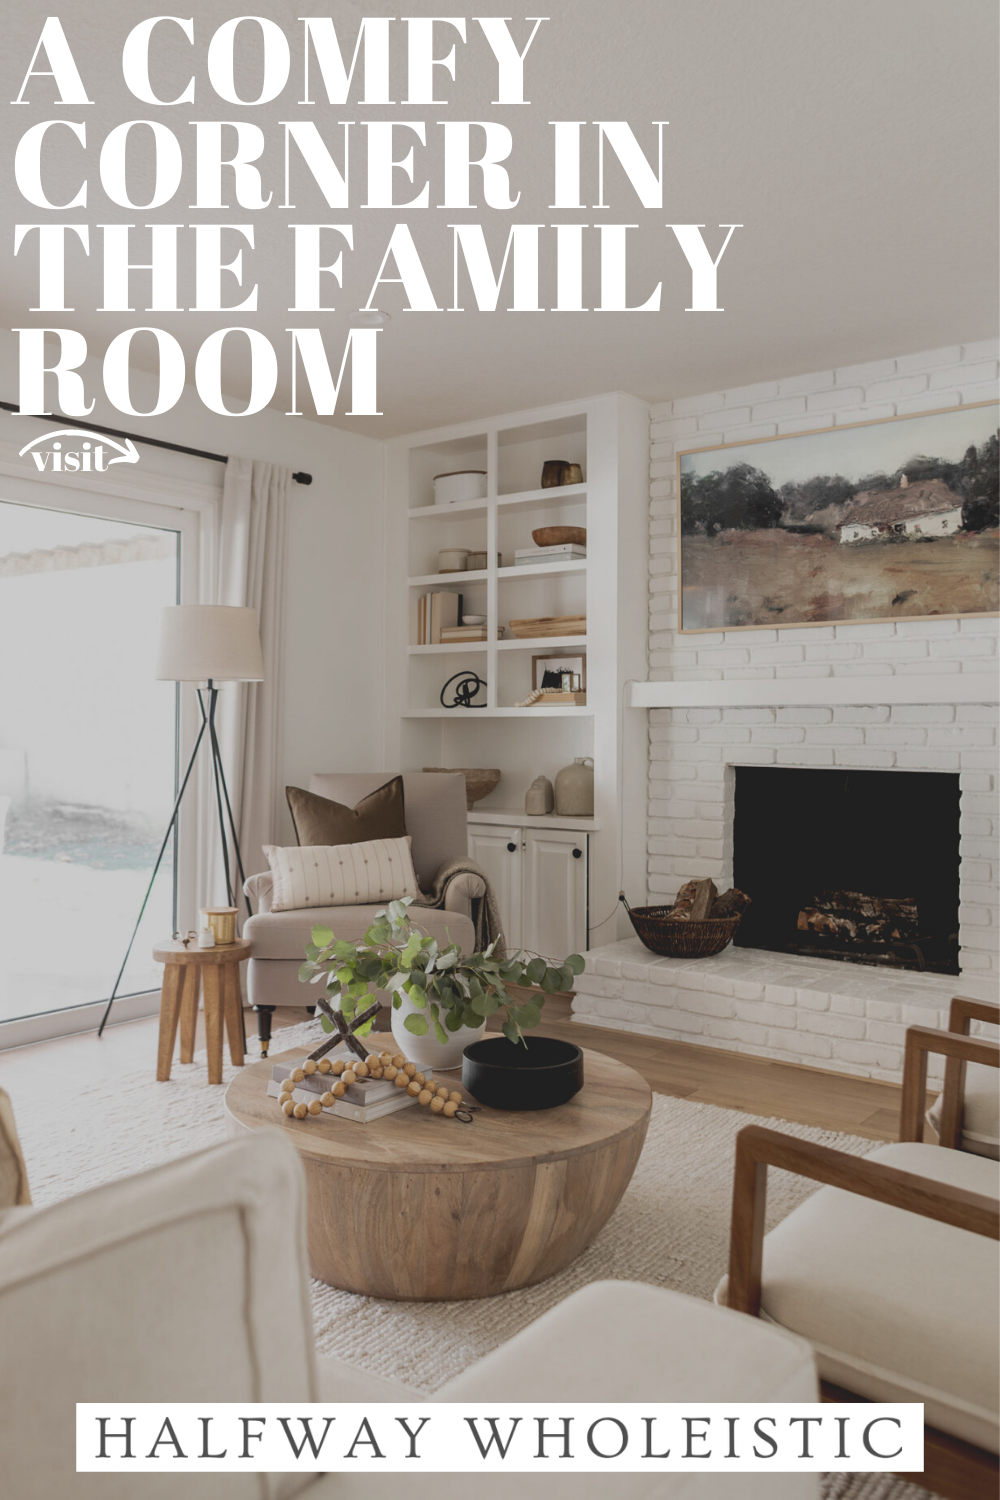 A Comfy Corner In The Family Room In 2021 Living Room Design Small Spaces Family Room Small Family Room